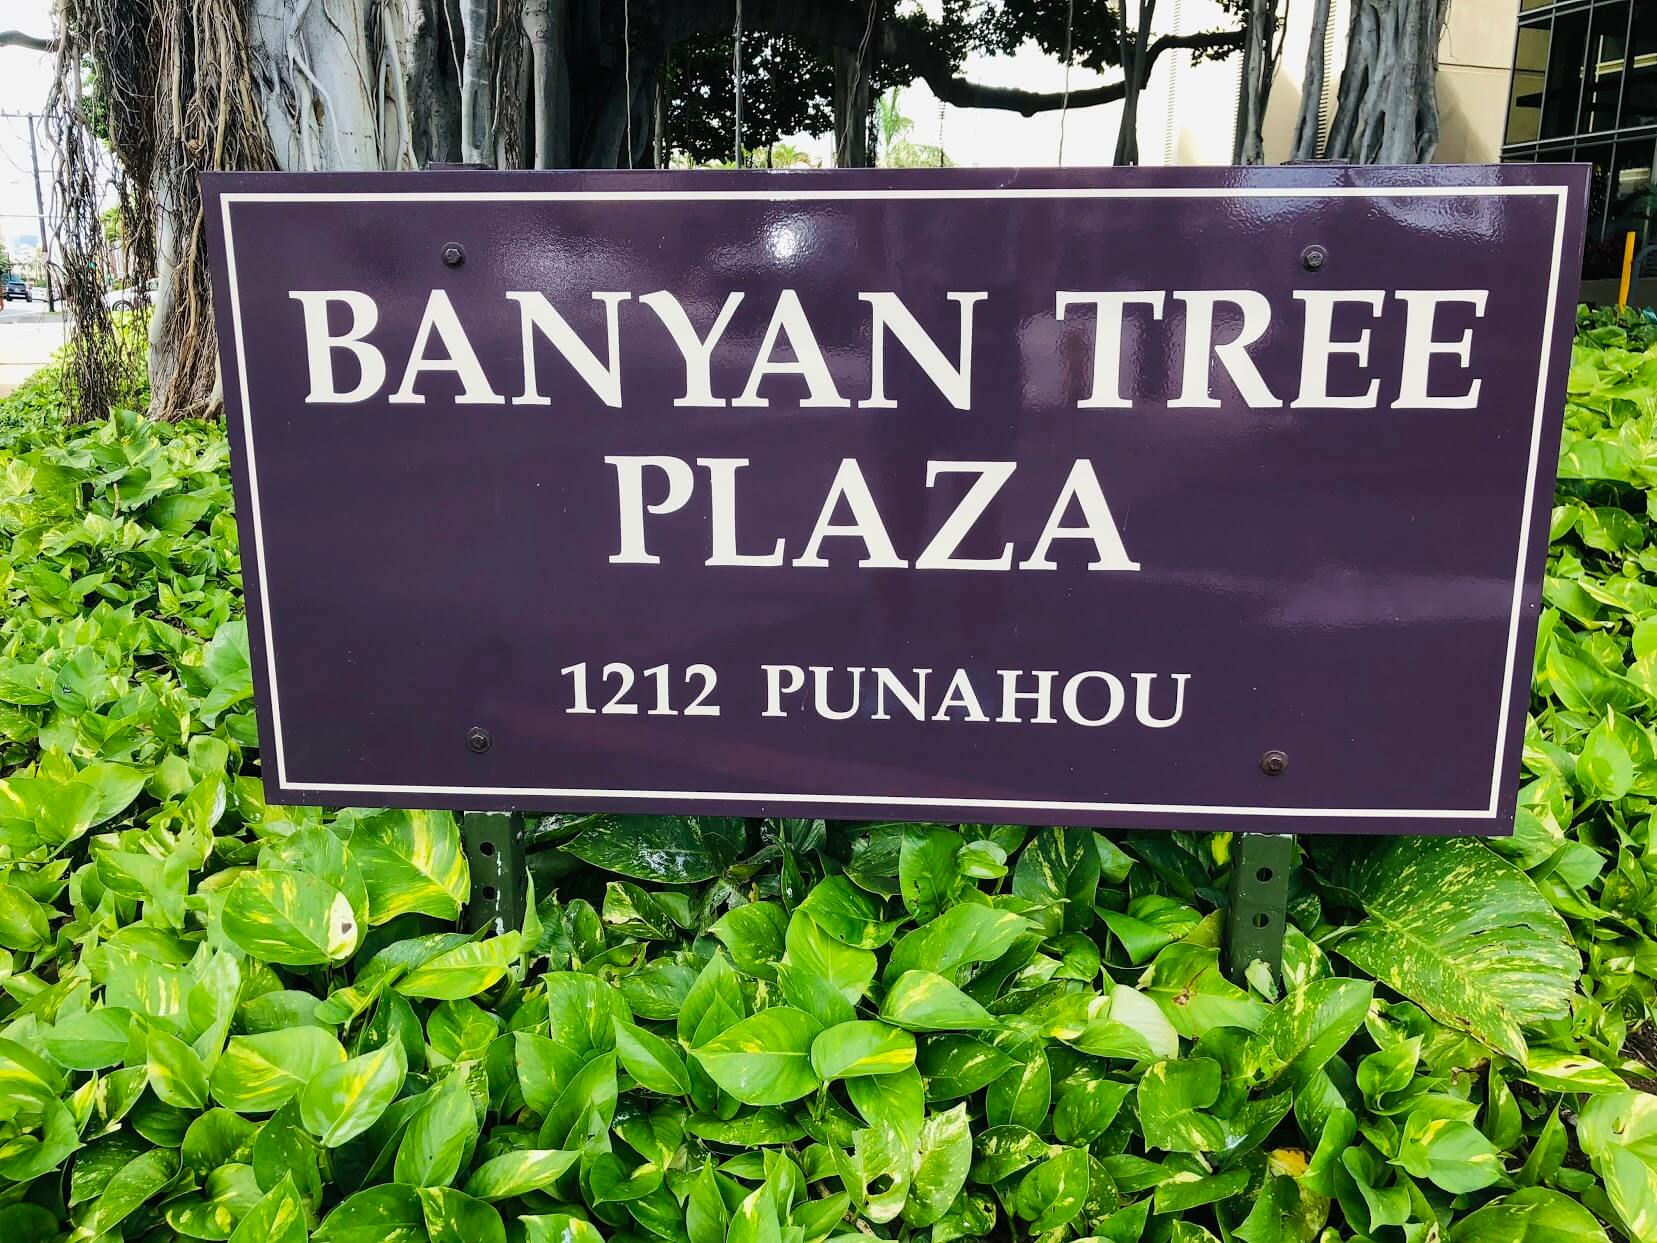 Banyan Tree Plaza 1212の看板